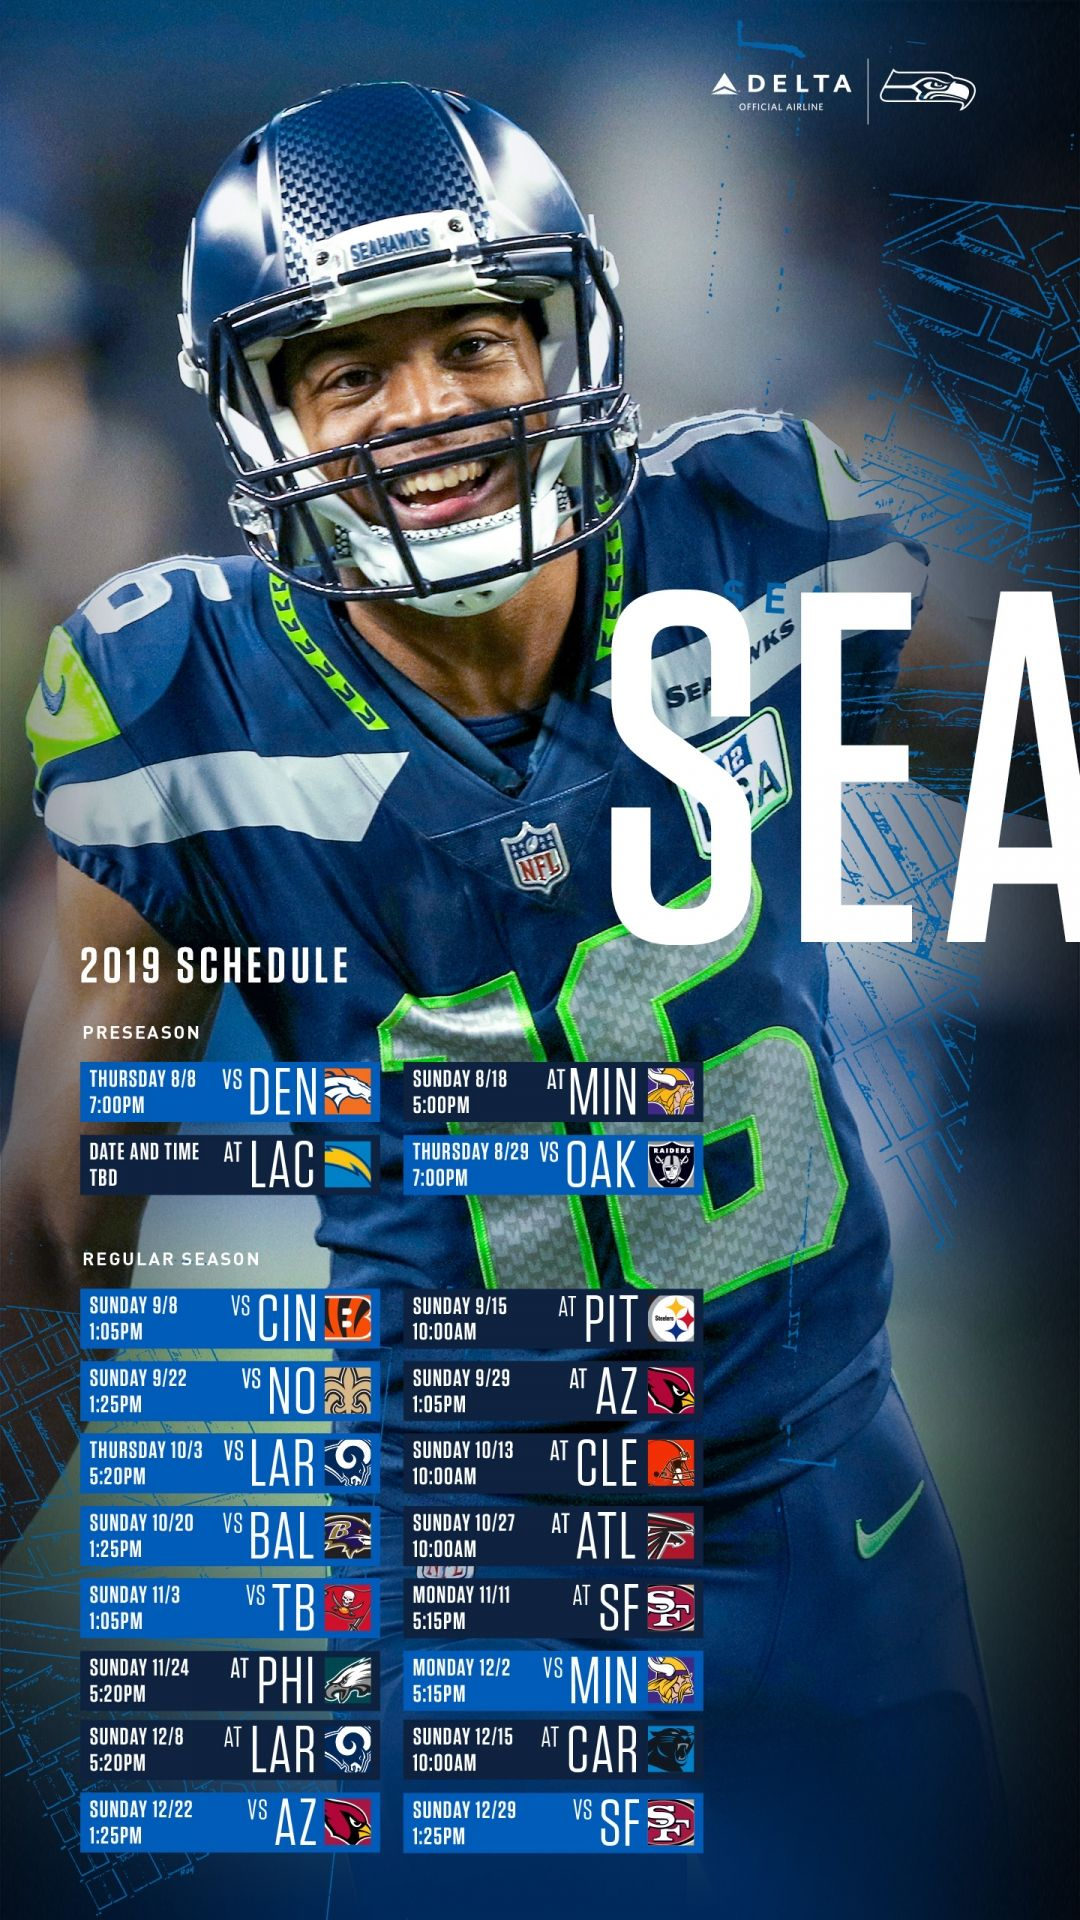 Seattle Seahawks Wallpaper Android In 2020 Seattle Seahawks Seahawks Seahawks Schedule